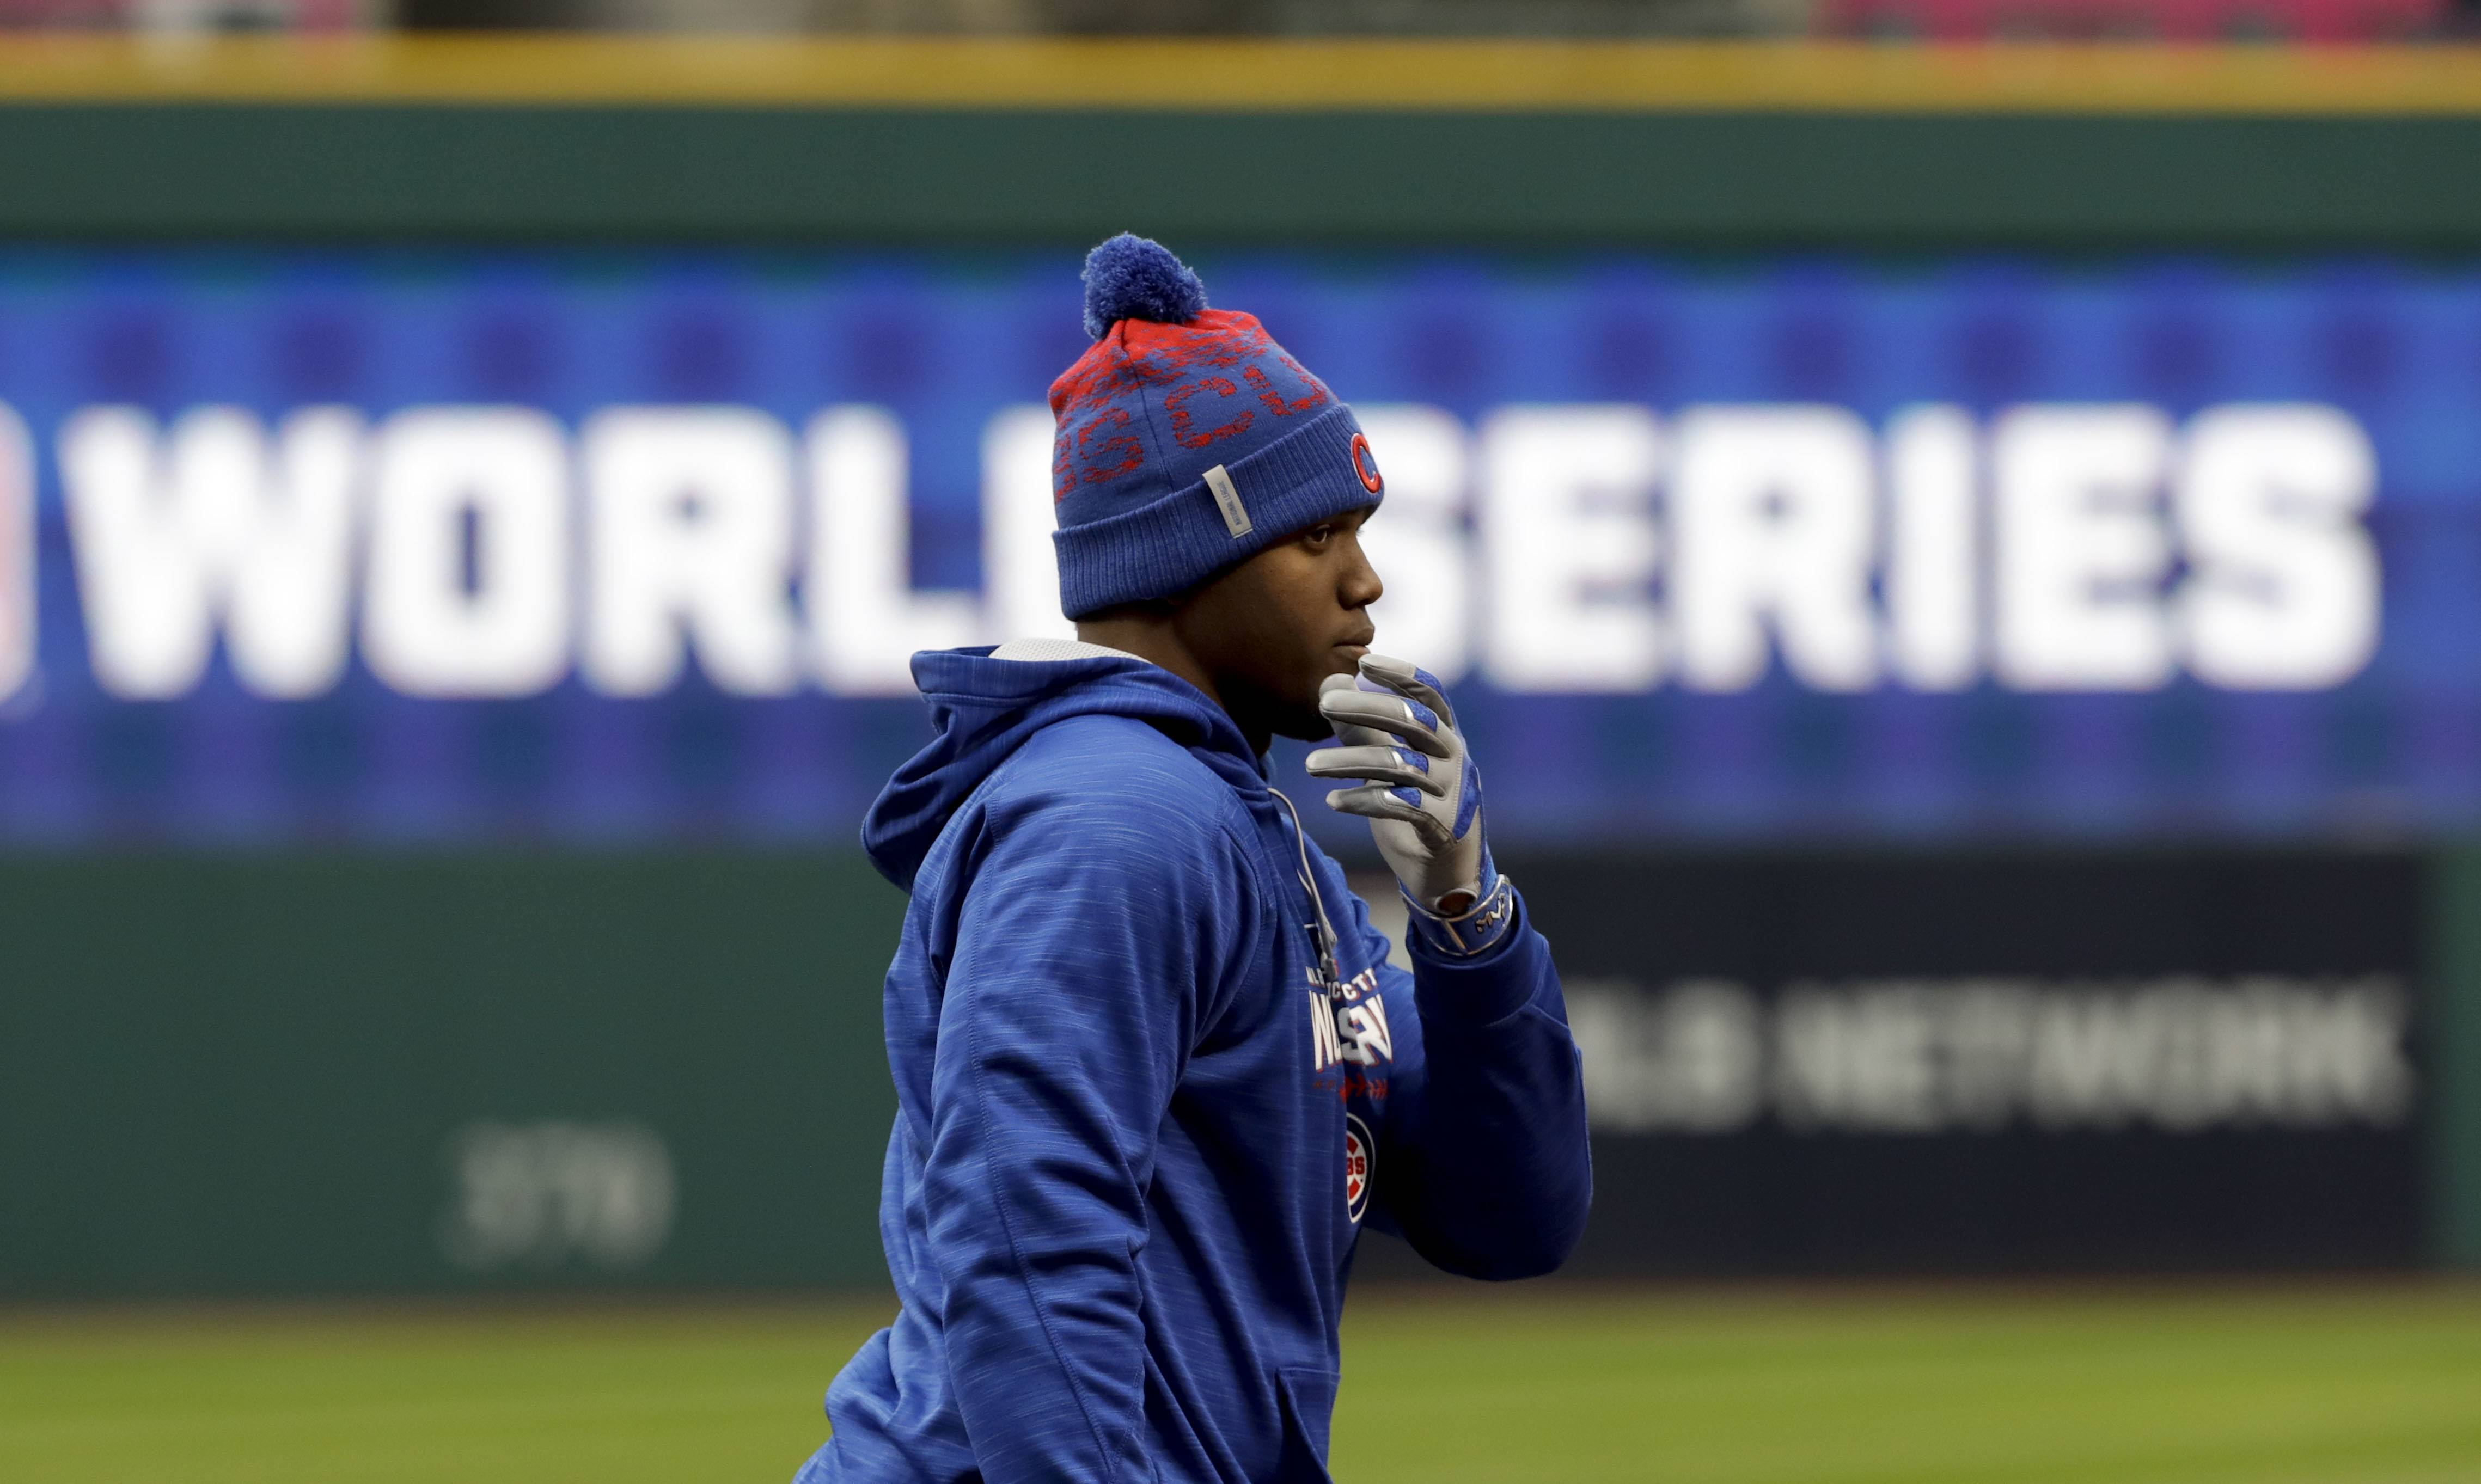 Chicago Cubs left fielder Jorge Soler will bat eighth and play right field tonight in Game 2 of the World Series.